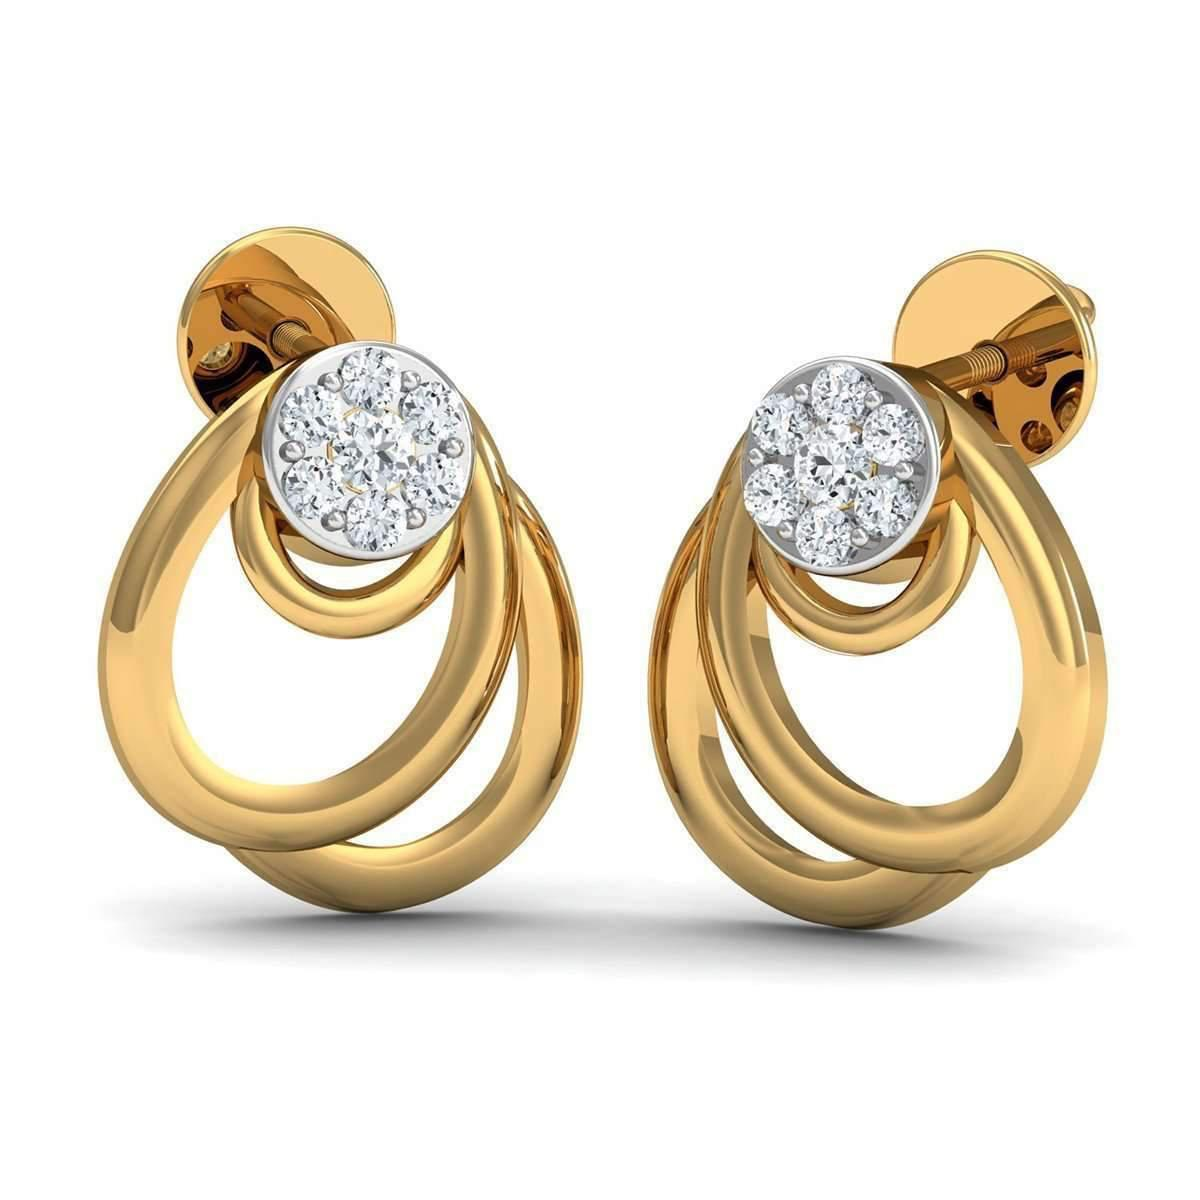 Diamoire Jewels Inspired by Nature Pave Diamond Earrings in 14kt Yellow Gold nHw0X1t